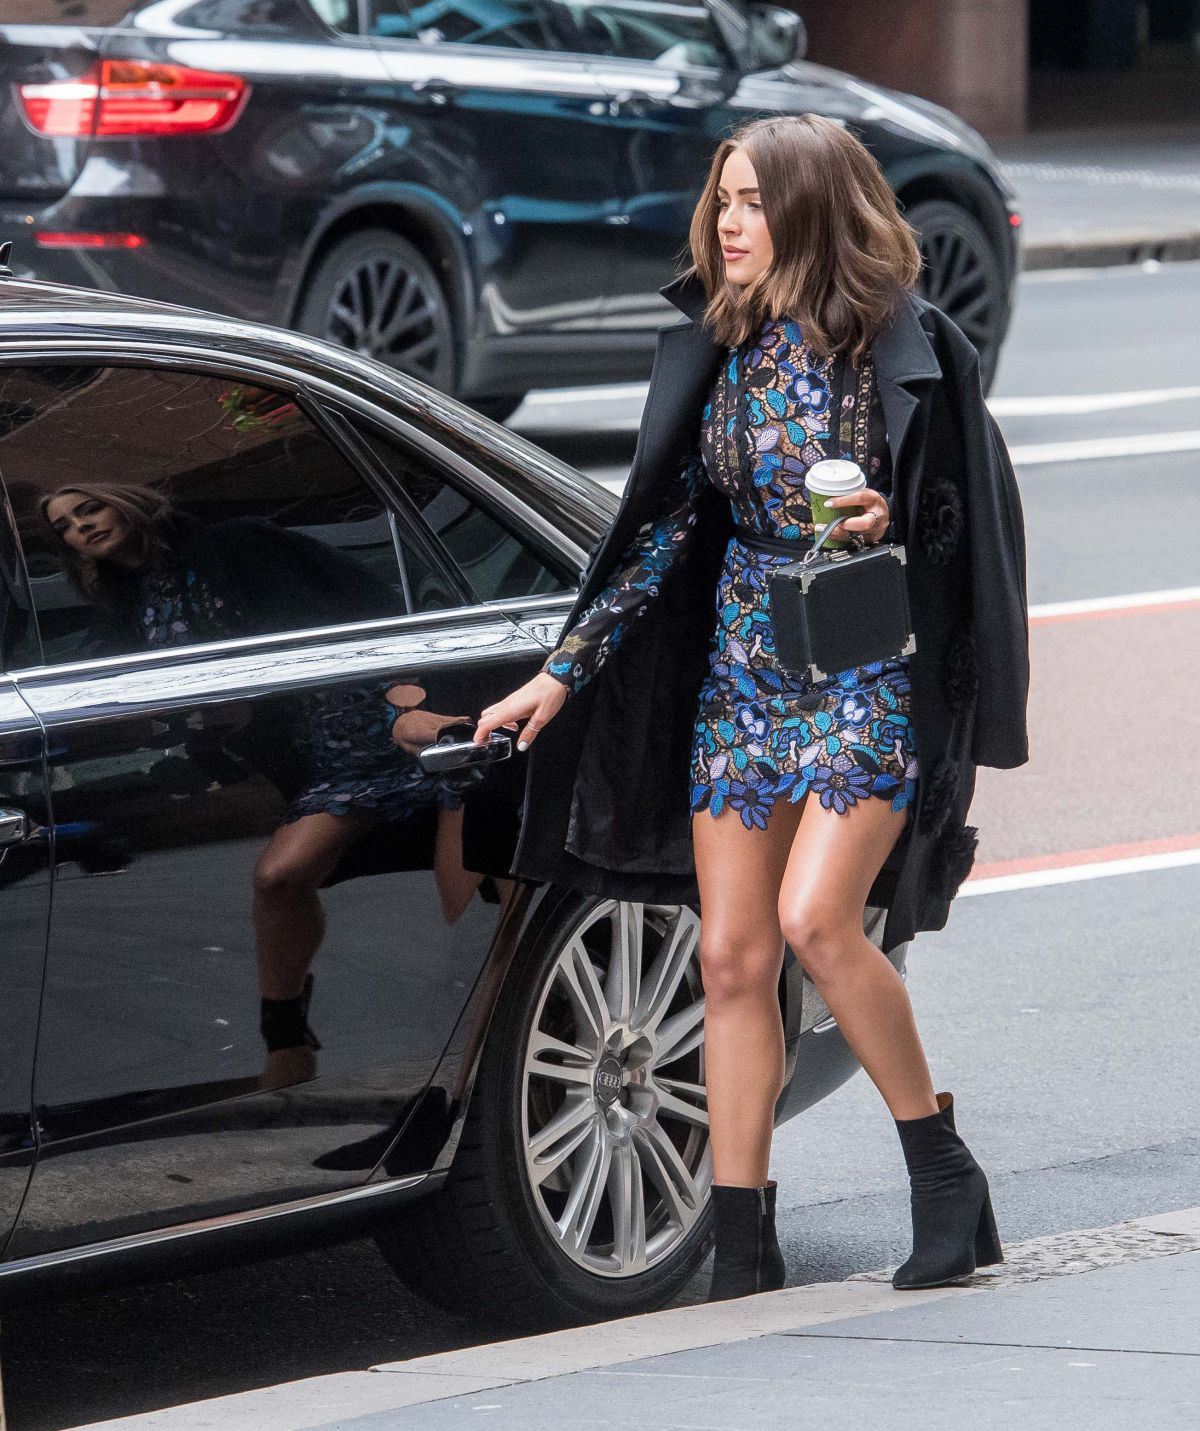 Olivia Culpo ride in her car Out And About In Sydney